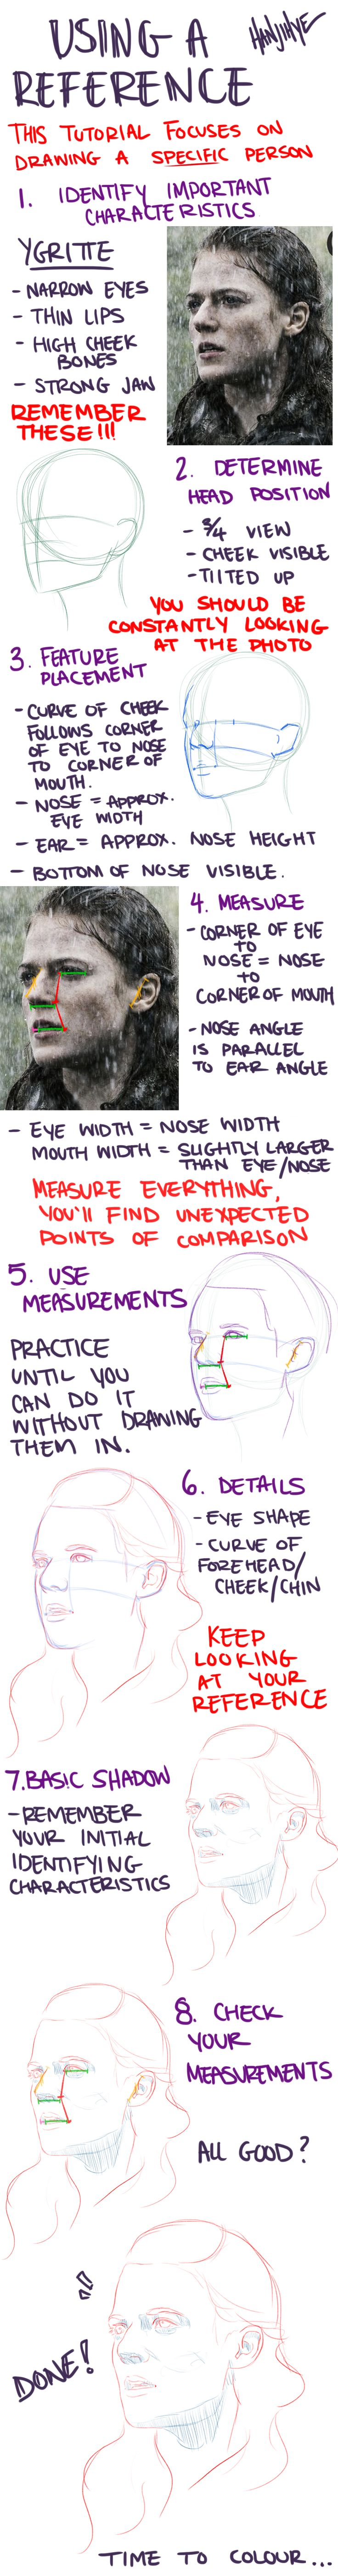 best ideas about face reference anatomy i wish i was better at taking notes from references i just use them to